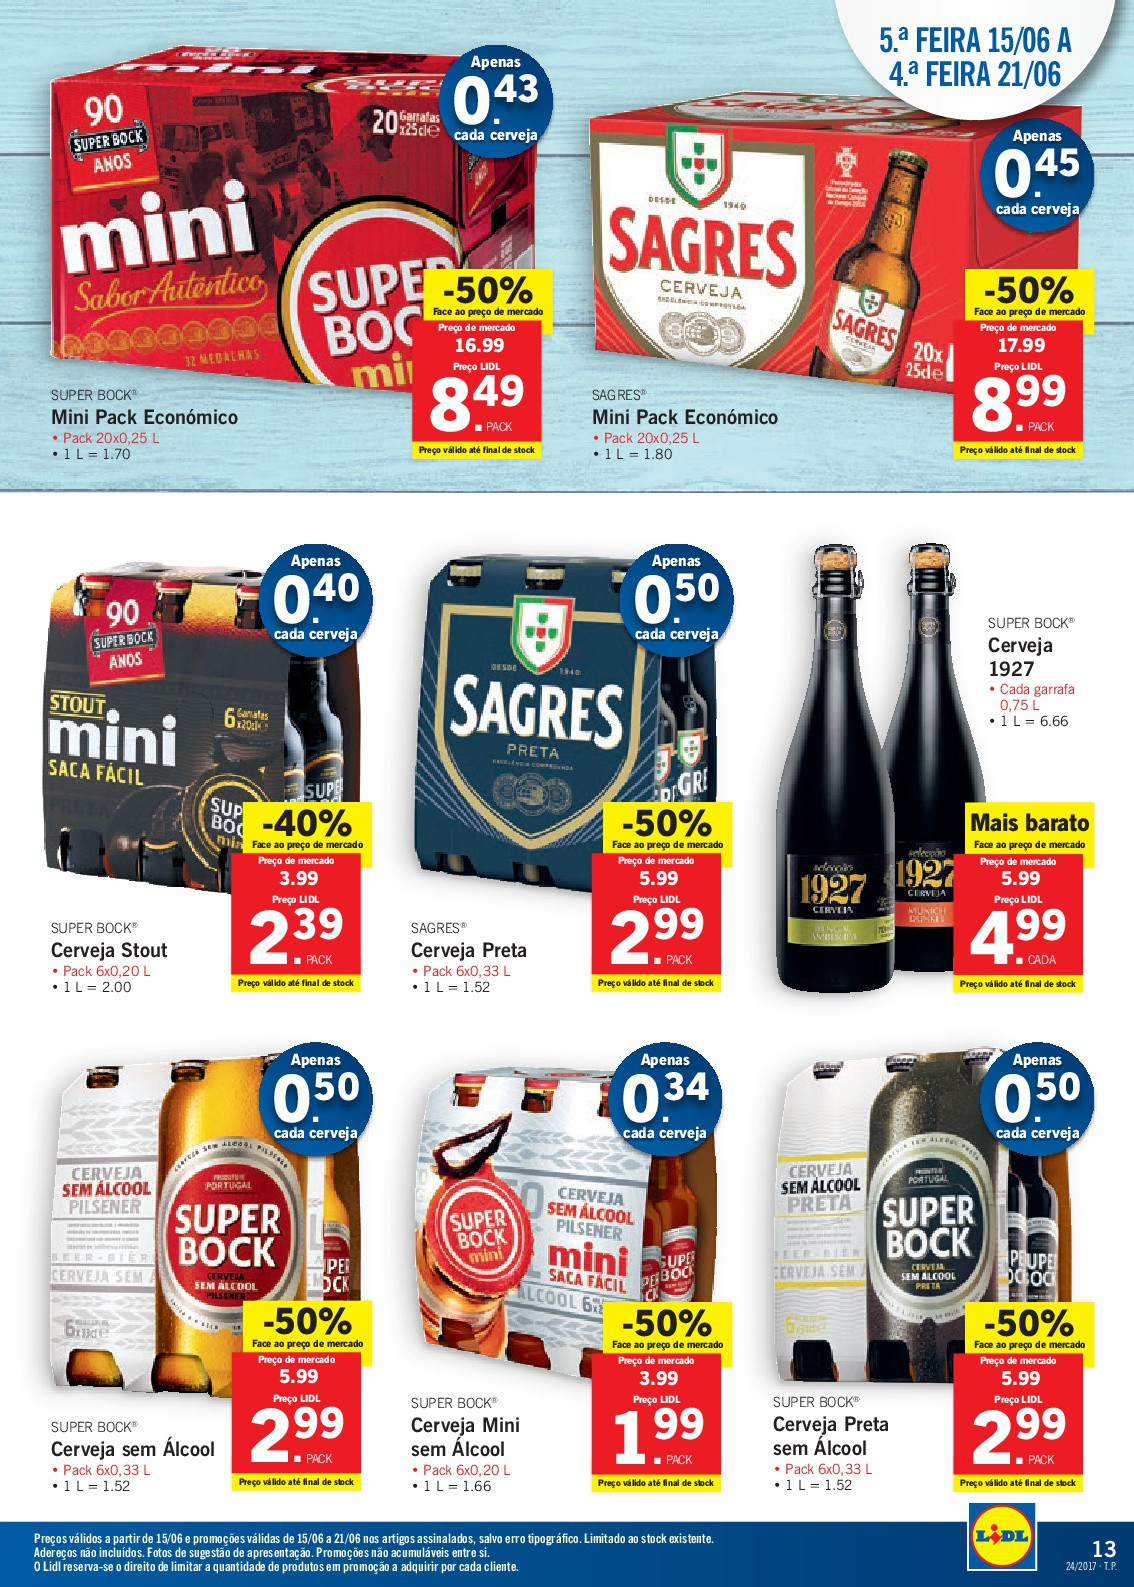 Lidl discount coupons